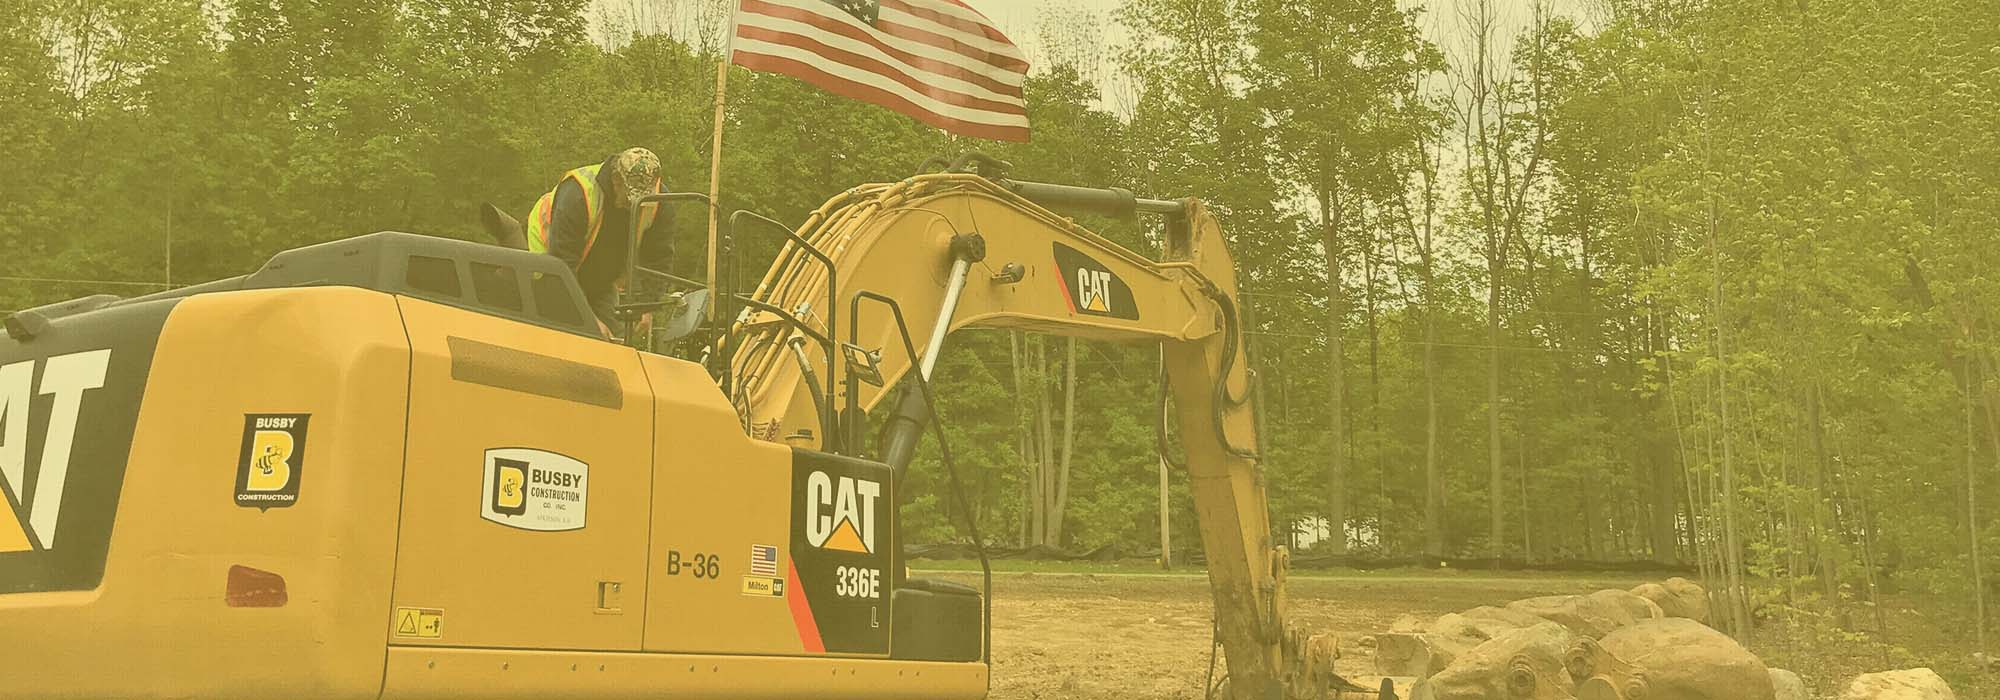 CAT Bucket Equipment With Flag